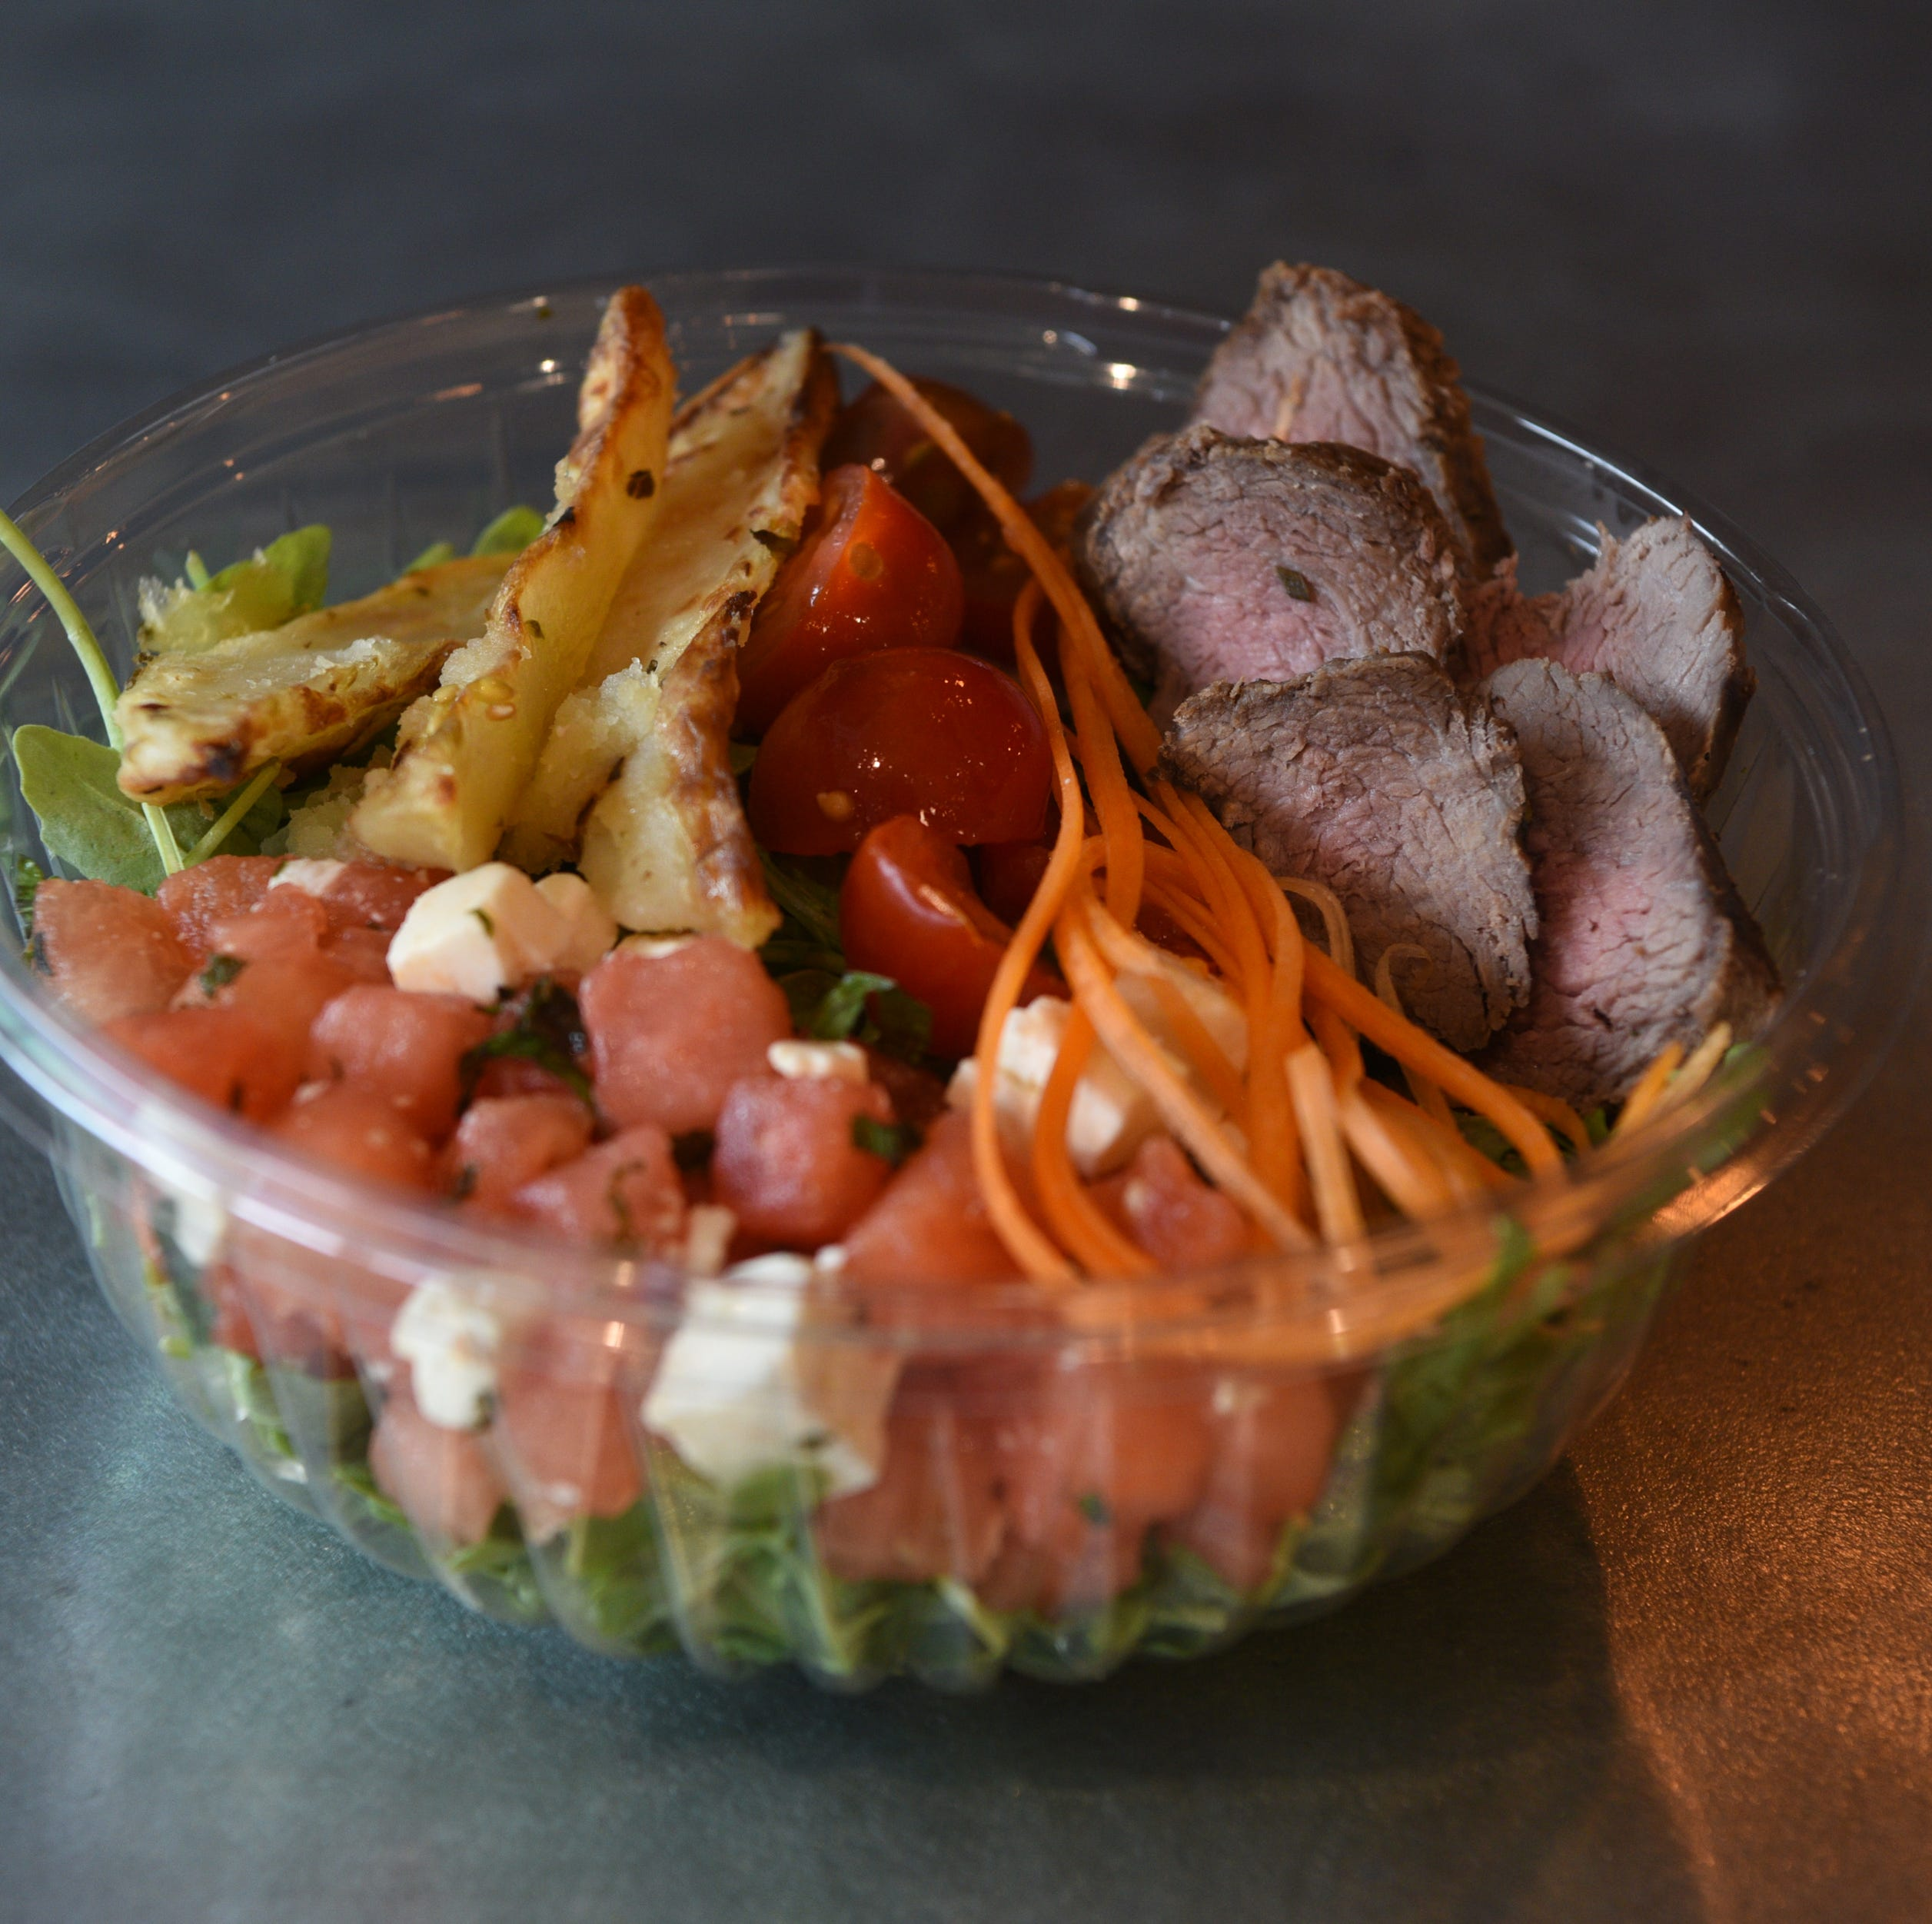 Open Now: Harvest Dish might just be the healthiest restaurant in Mahwah